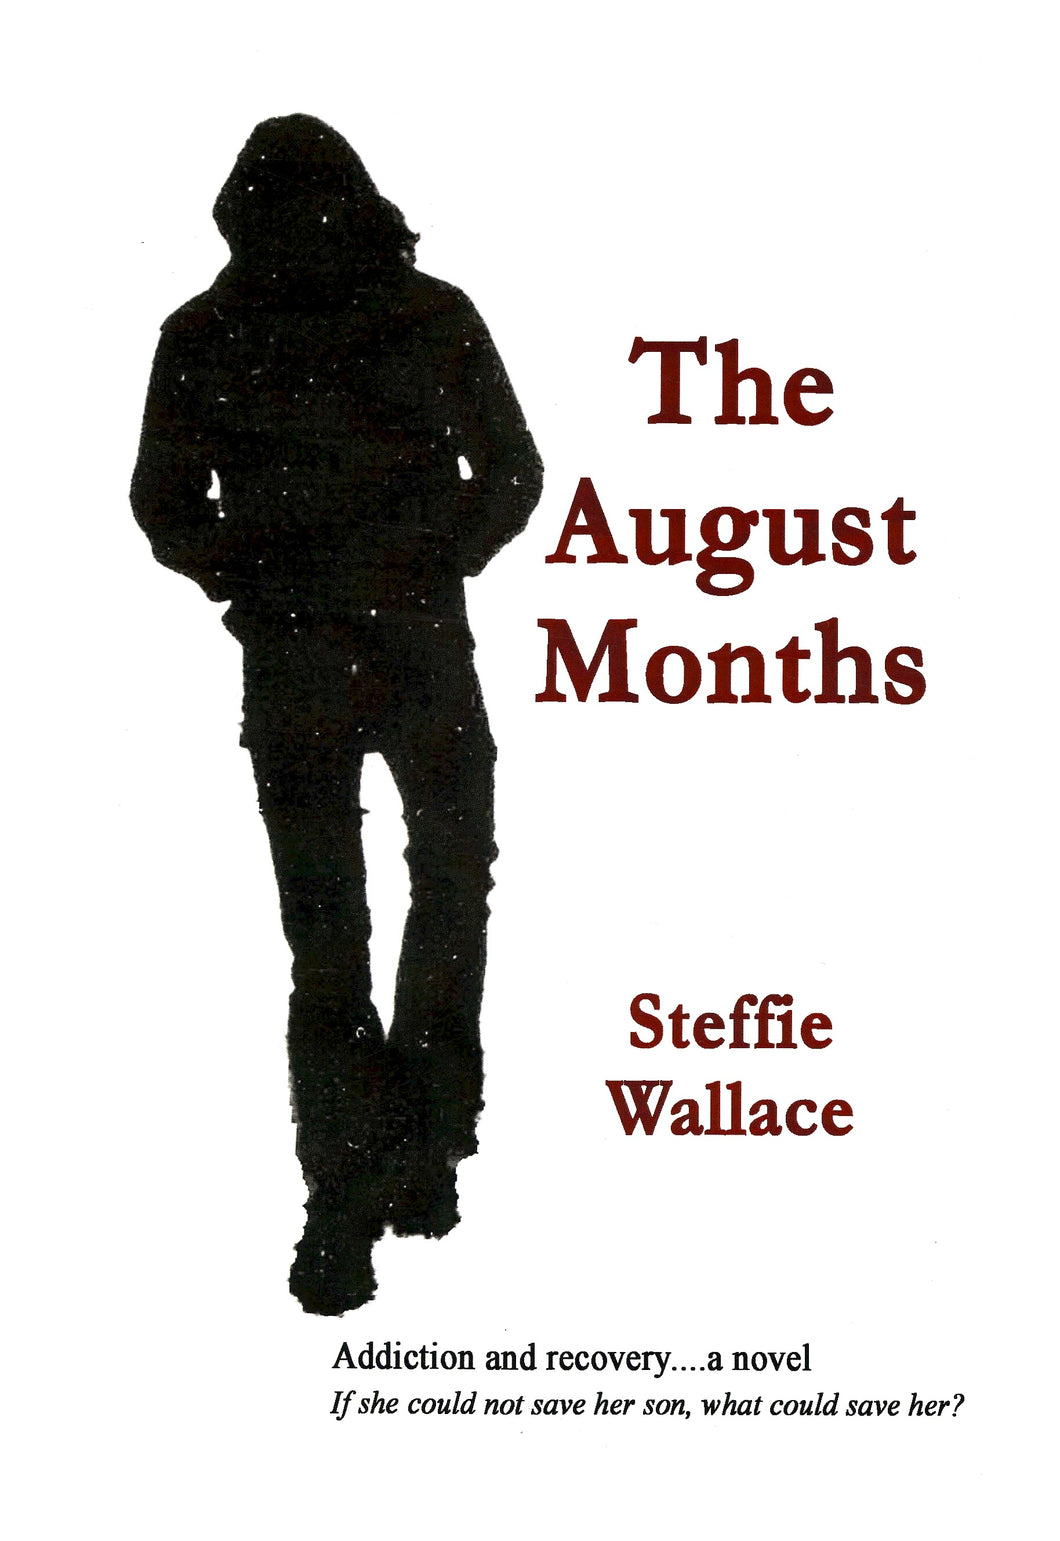 'The August Months' a novel by Steffie Wallace